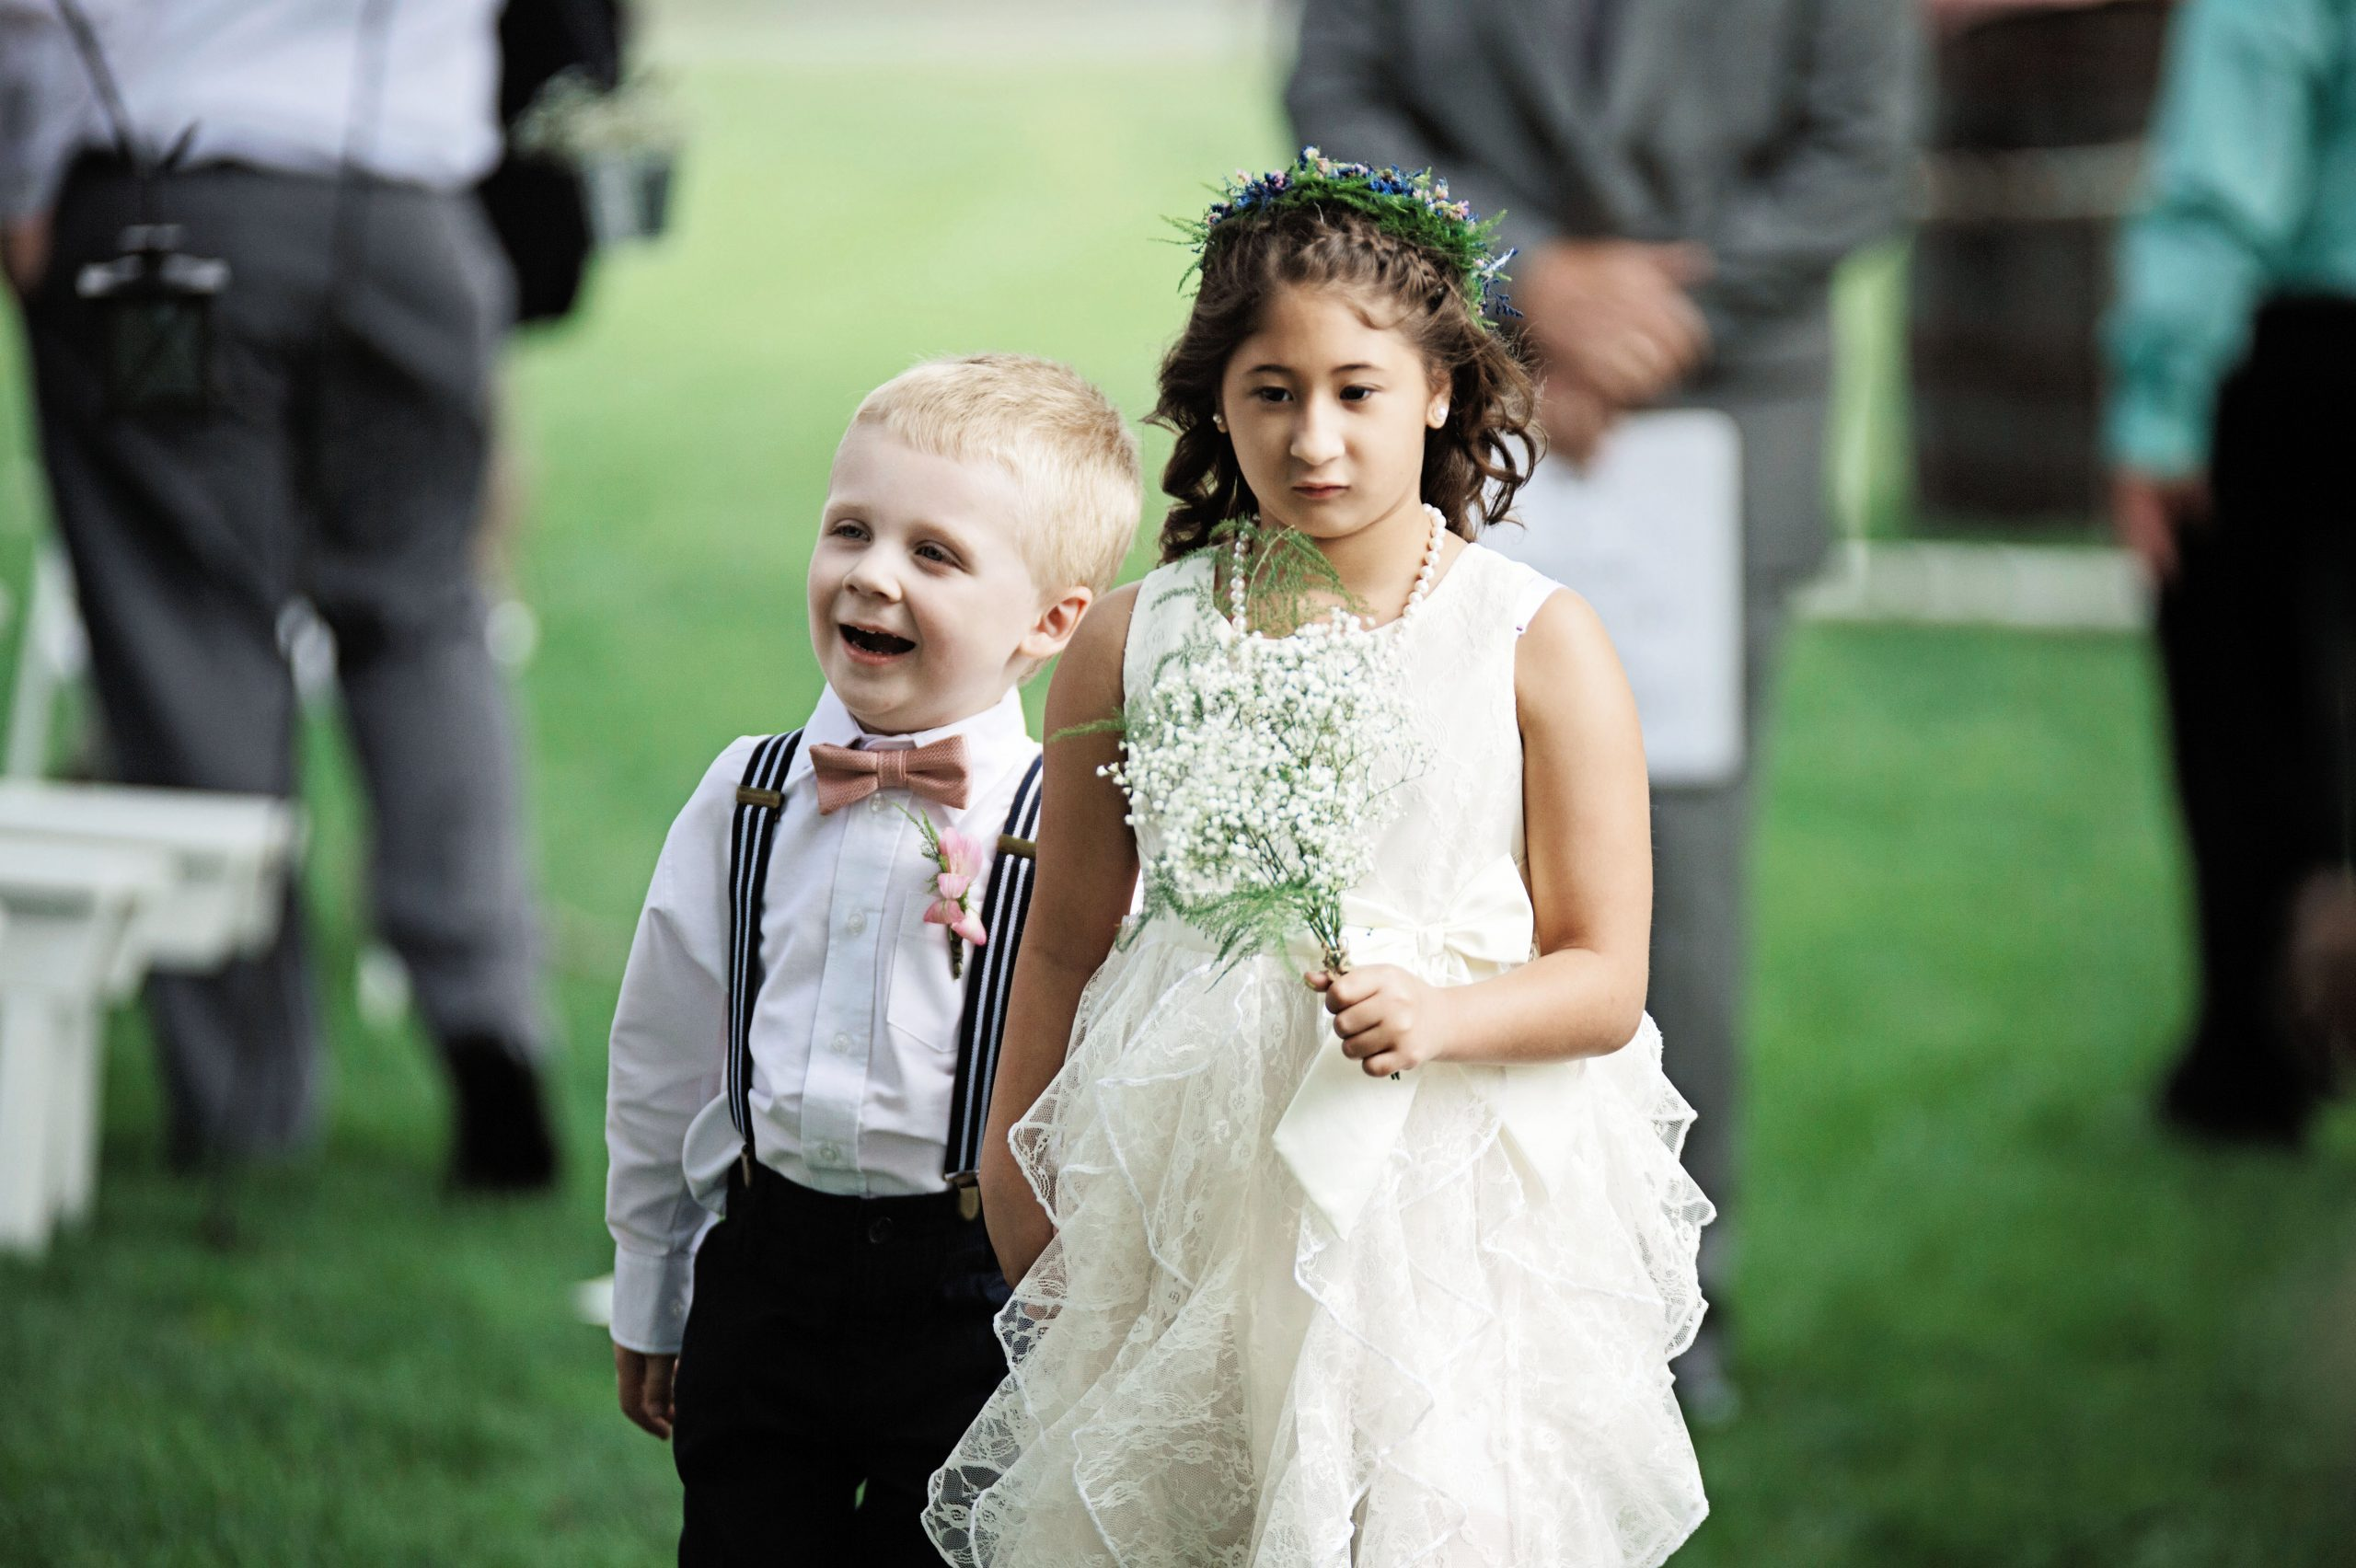 Flower girl and ring bearer make their way down the isle at Lakeview Farms of York, PA. Lovefusion effortlessly capturing this moment. Featured in Dream Weddings.